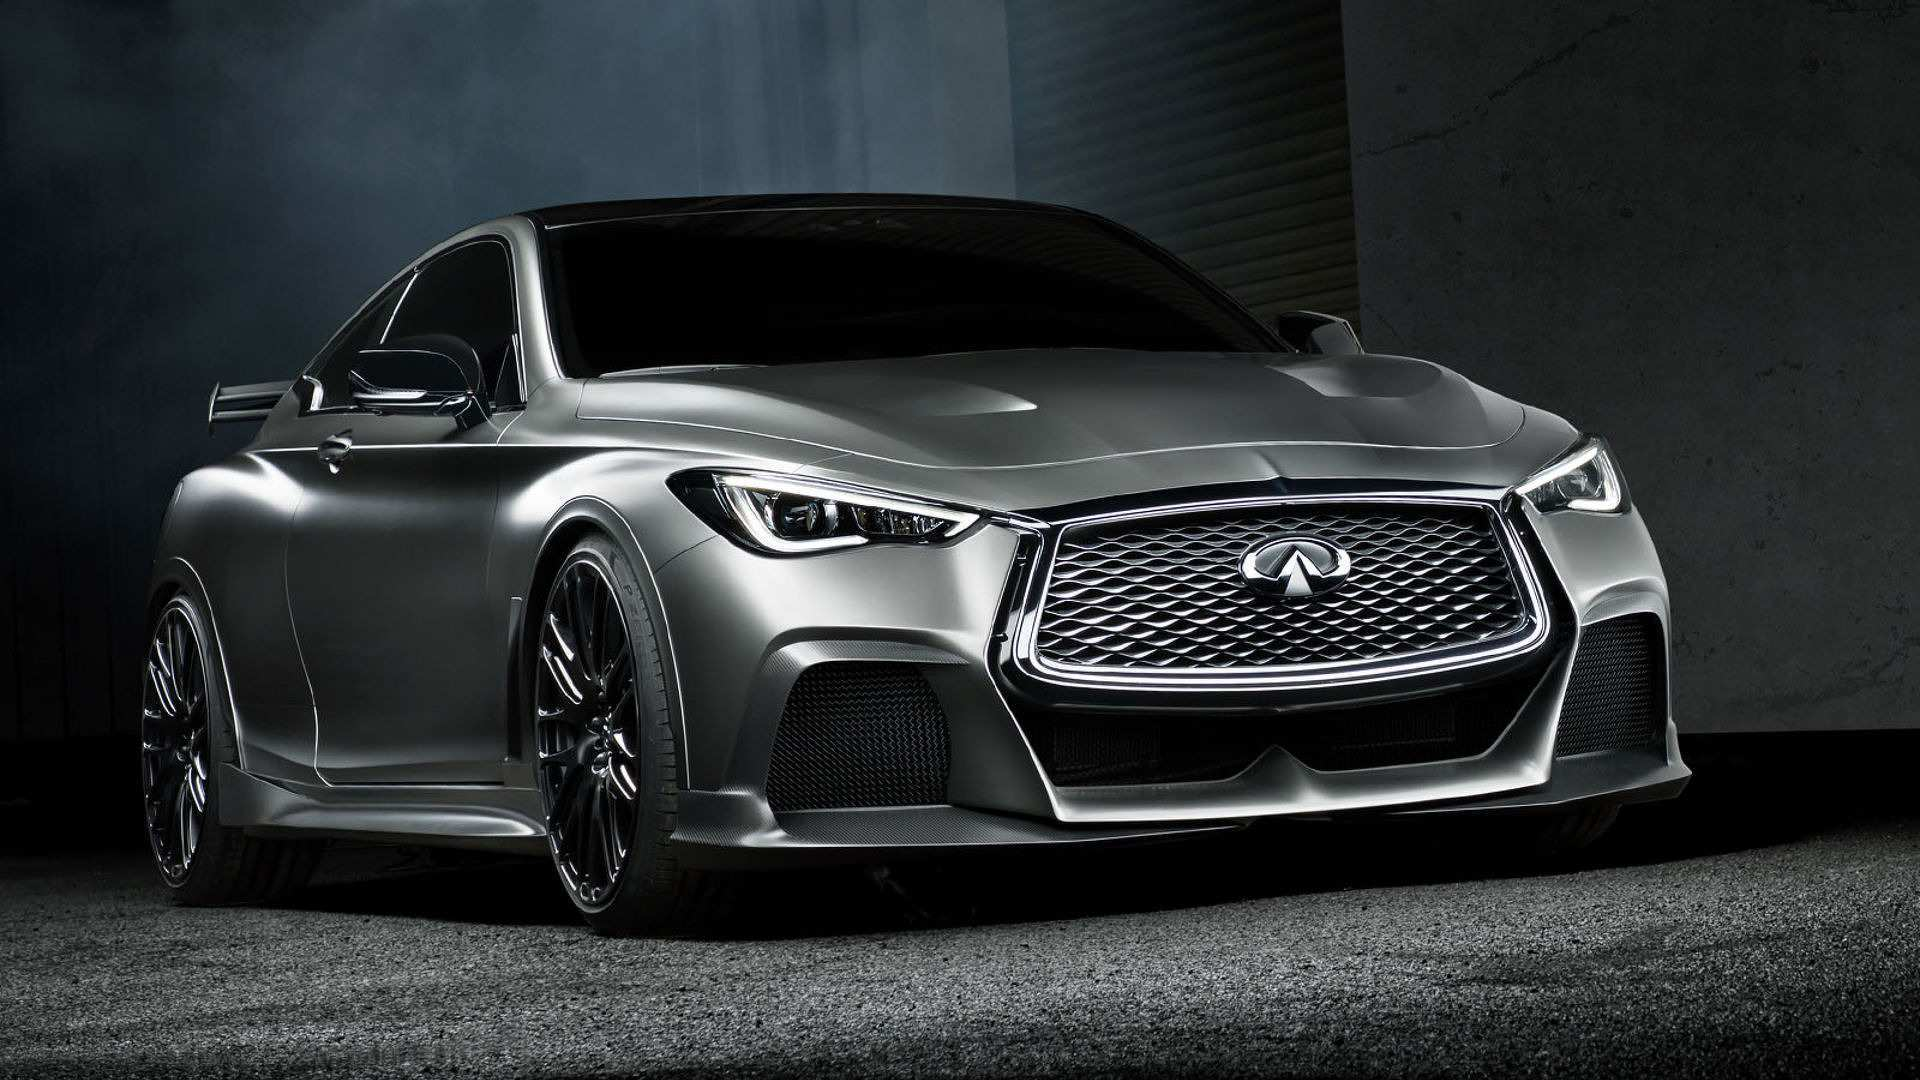 55 All New 2020 Infiniti Q60 Coupe Price And Release Date